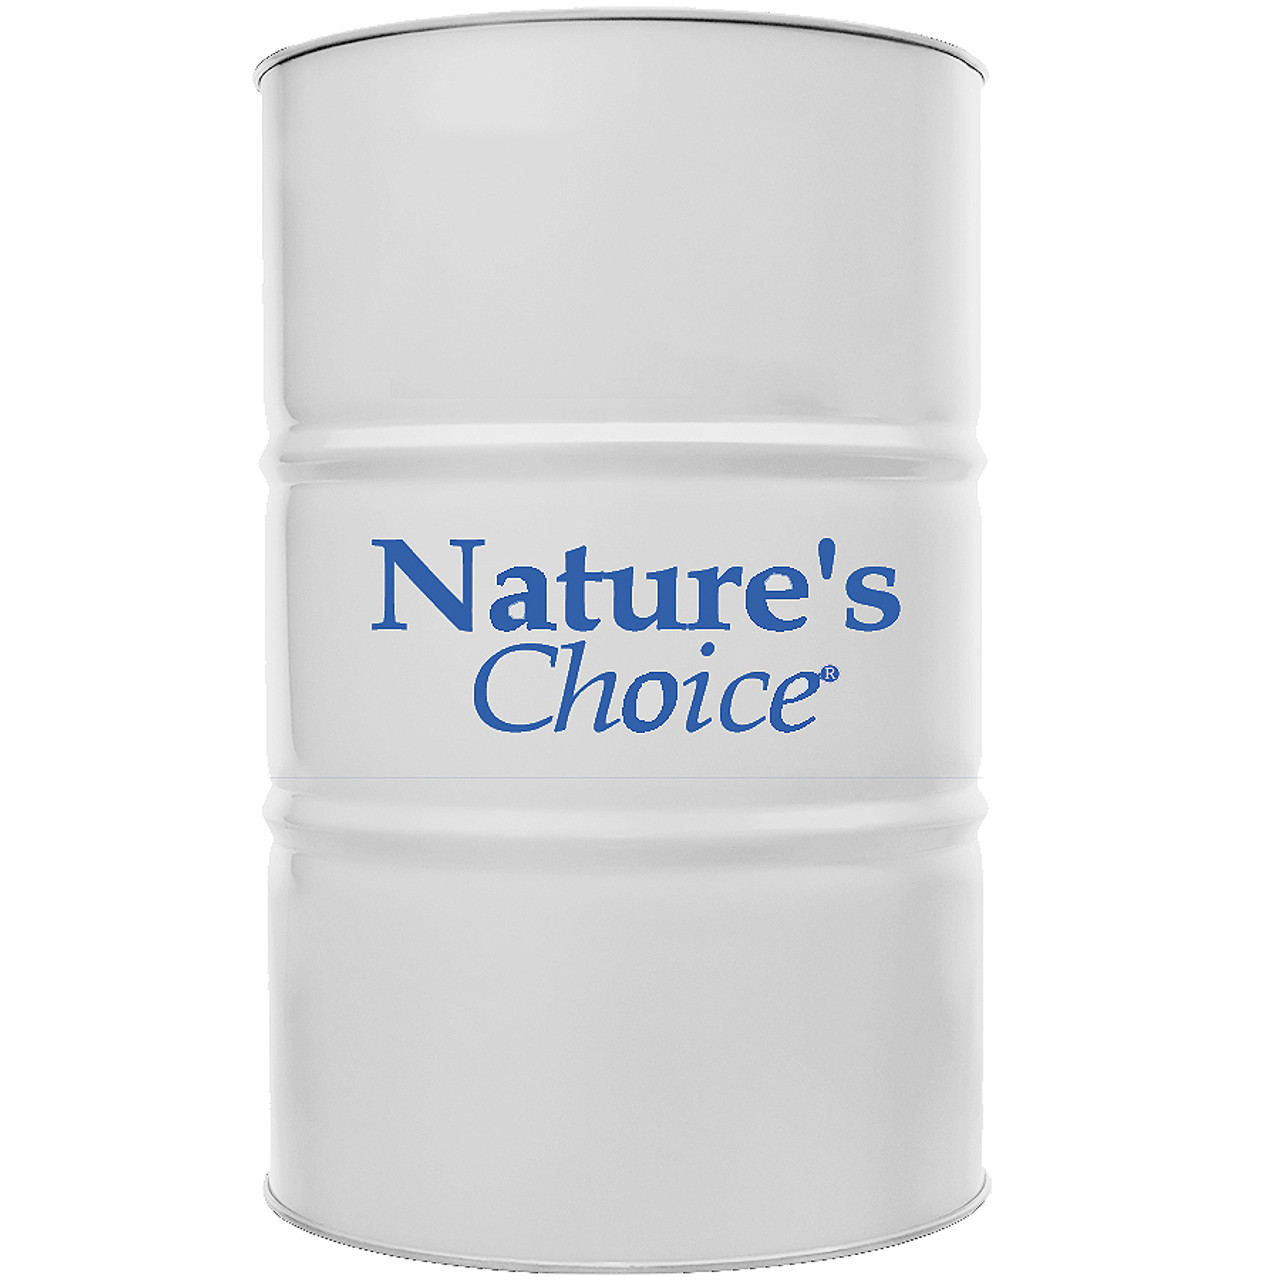 Nature's Choice SAE 30 Re-Refined Marine Diesel Engine Oil